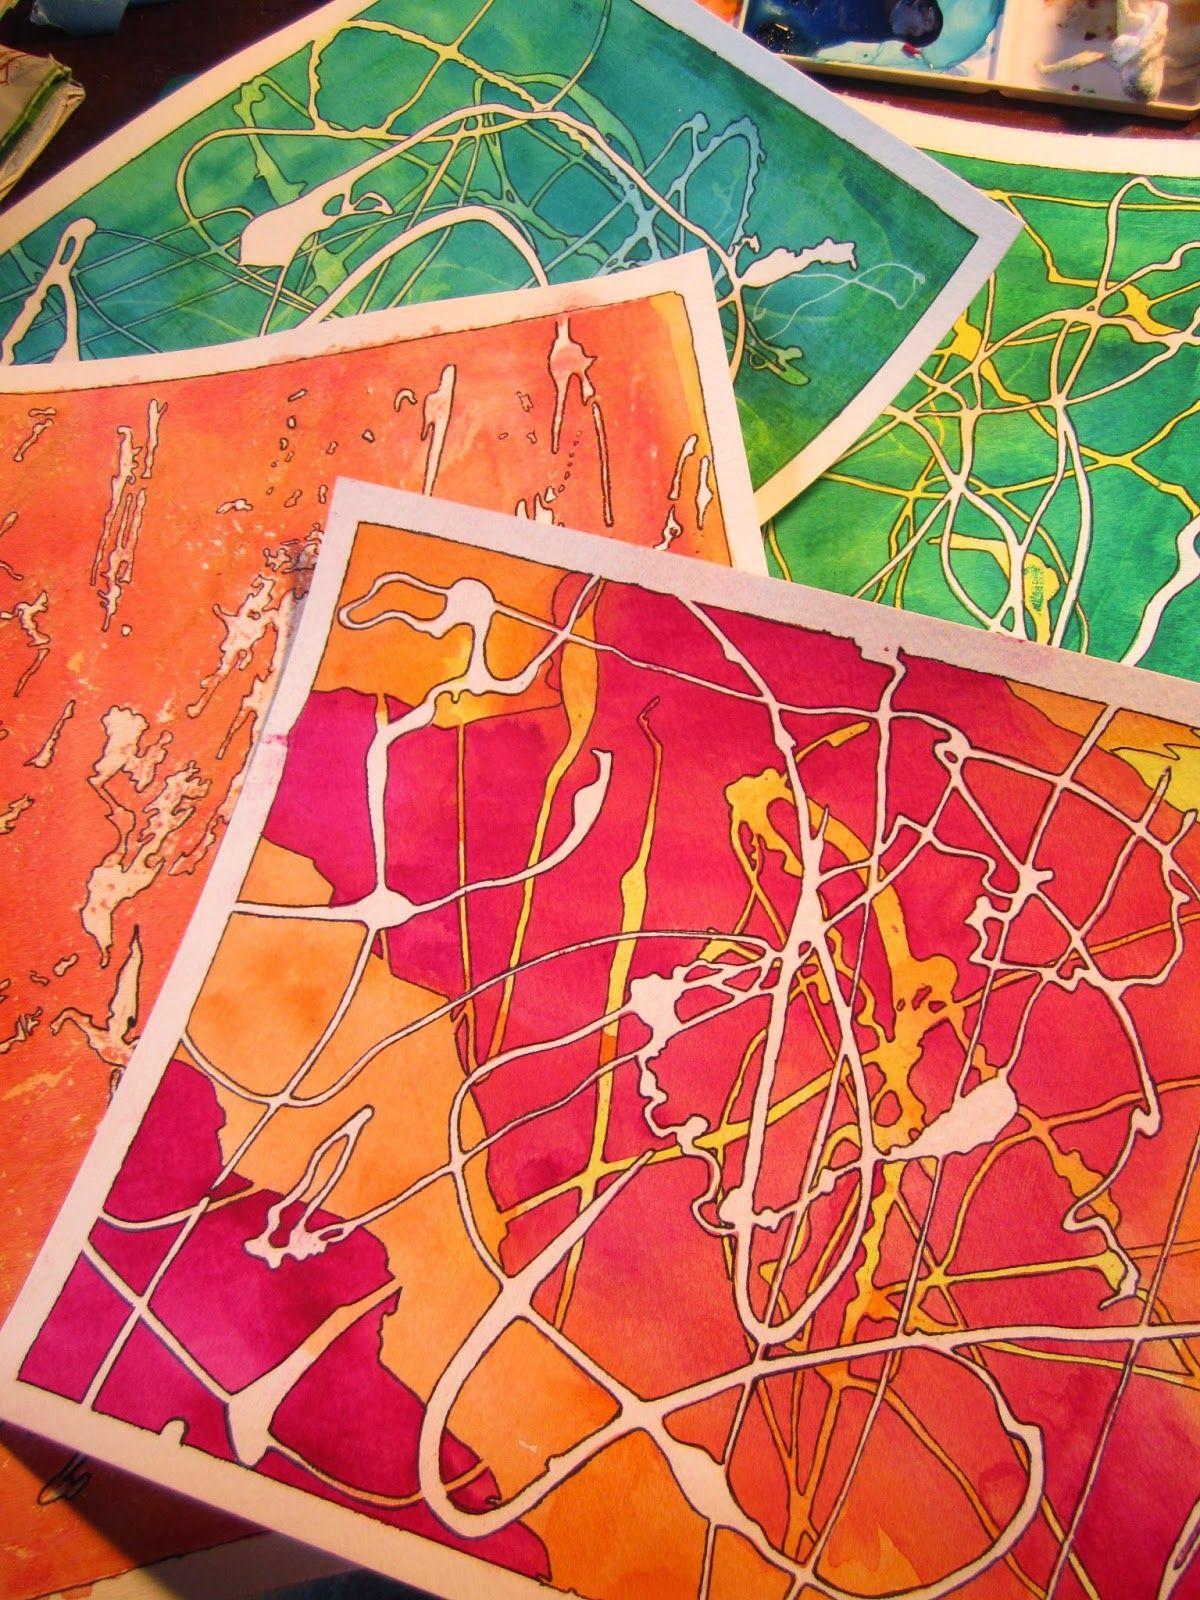 Drawing Near Watercolor Painted Papers With Rubber Cement